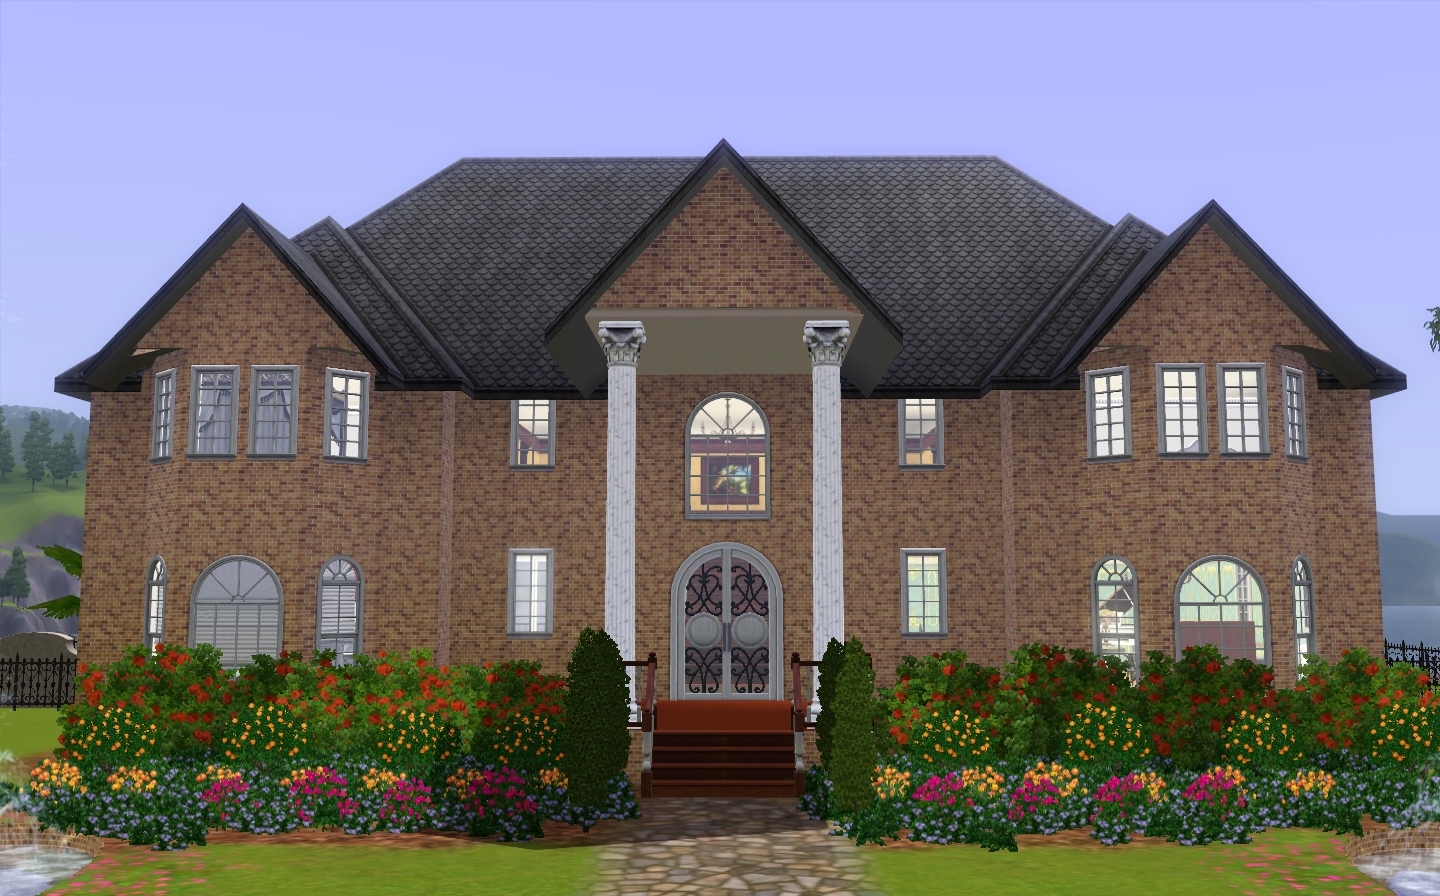 20 Perfect Images The Sims 3 Houses House Plans 41361